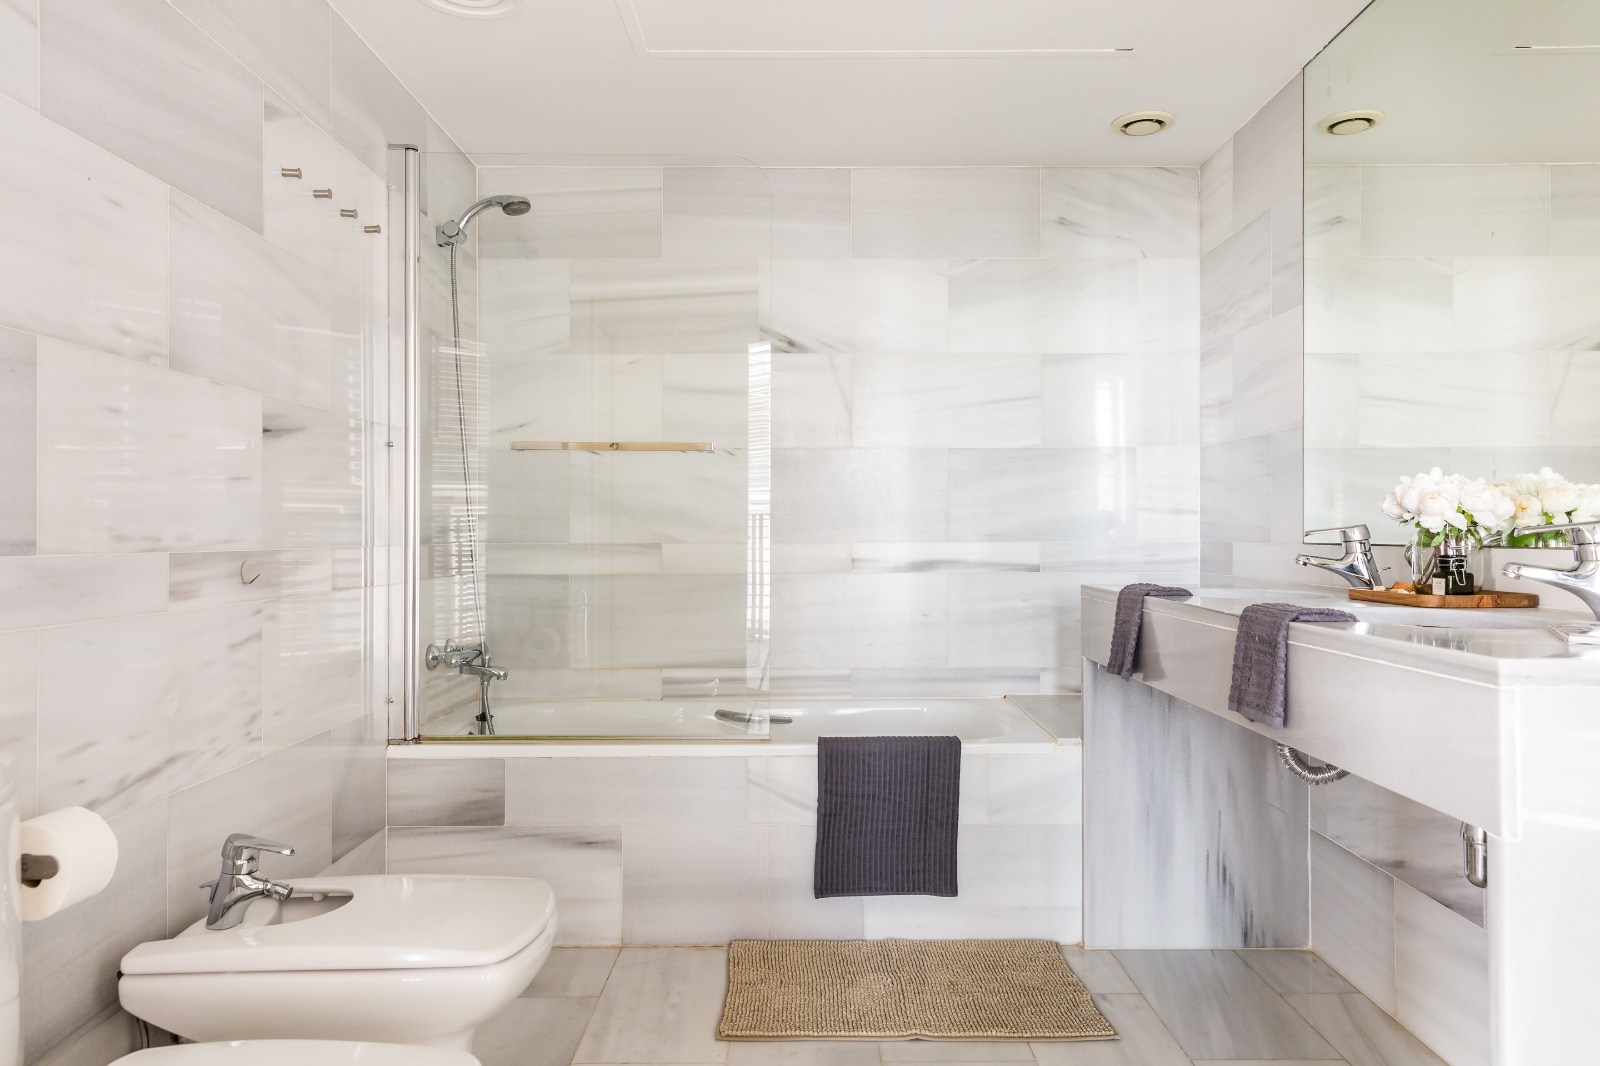 Interior Design Styles for Your New Barcelona Home 11 Interior Design Styles for Your New Barcelona Home